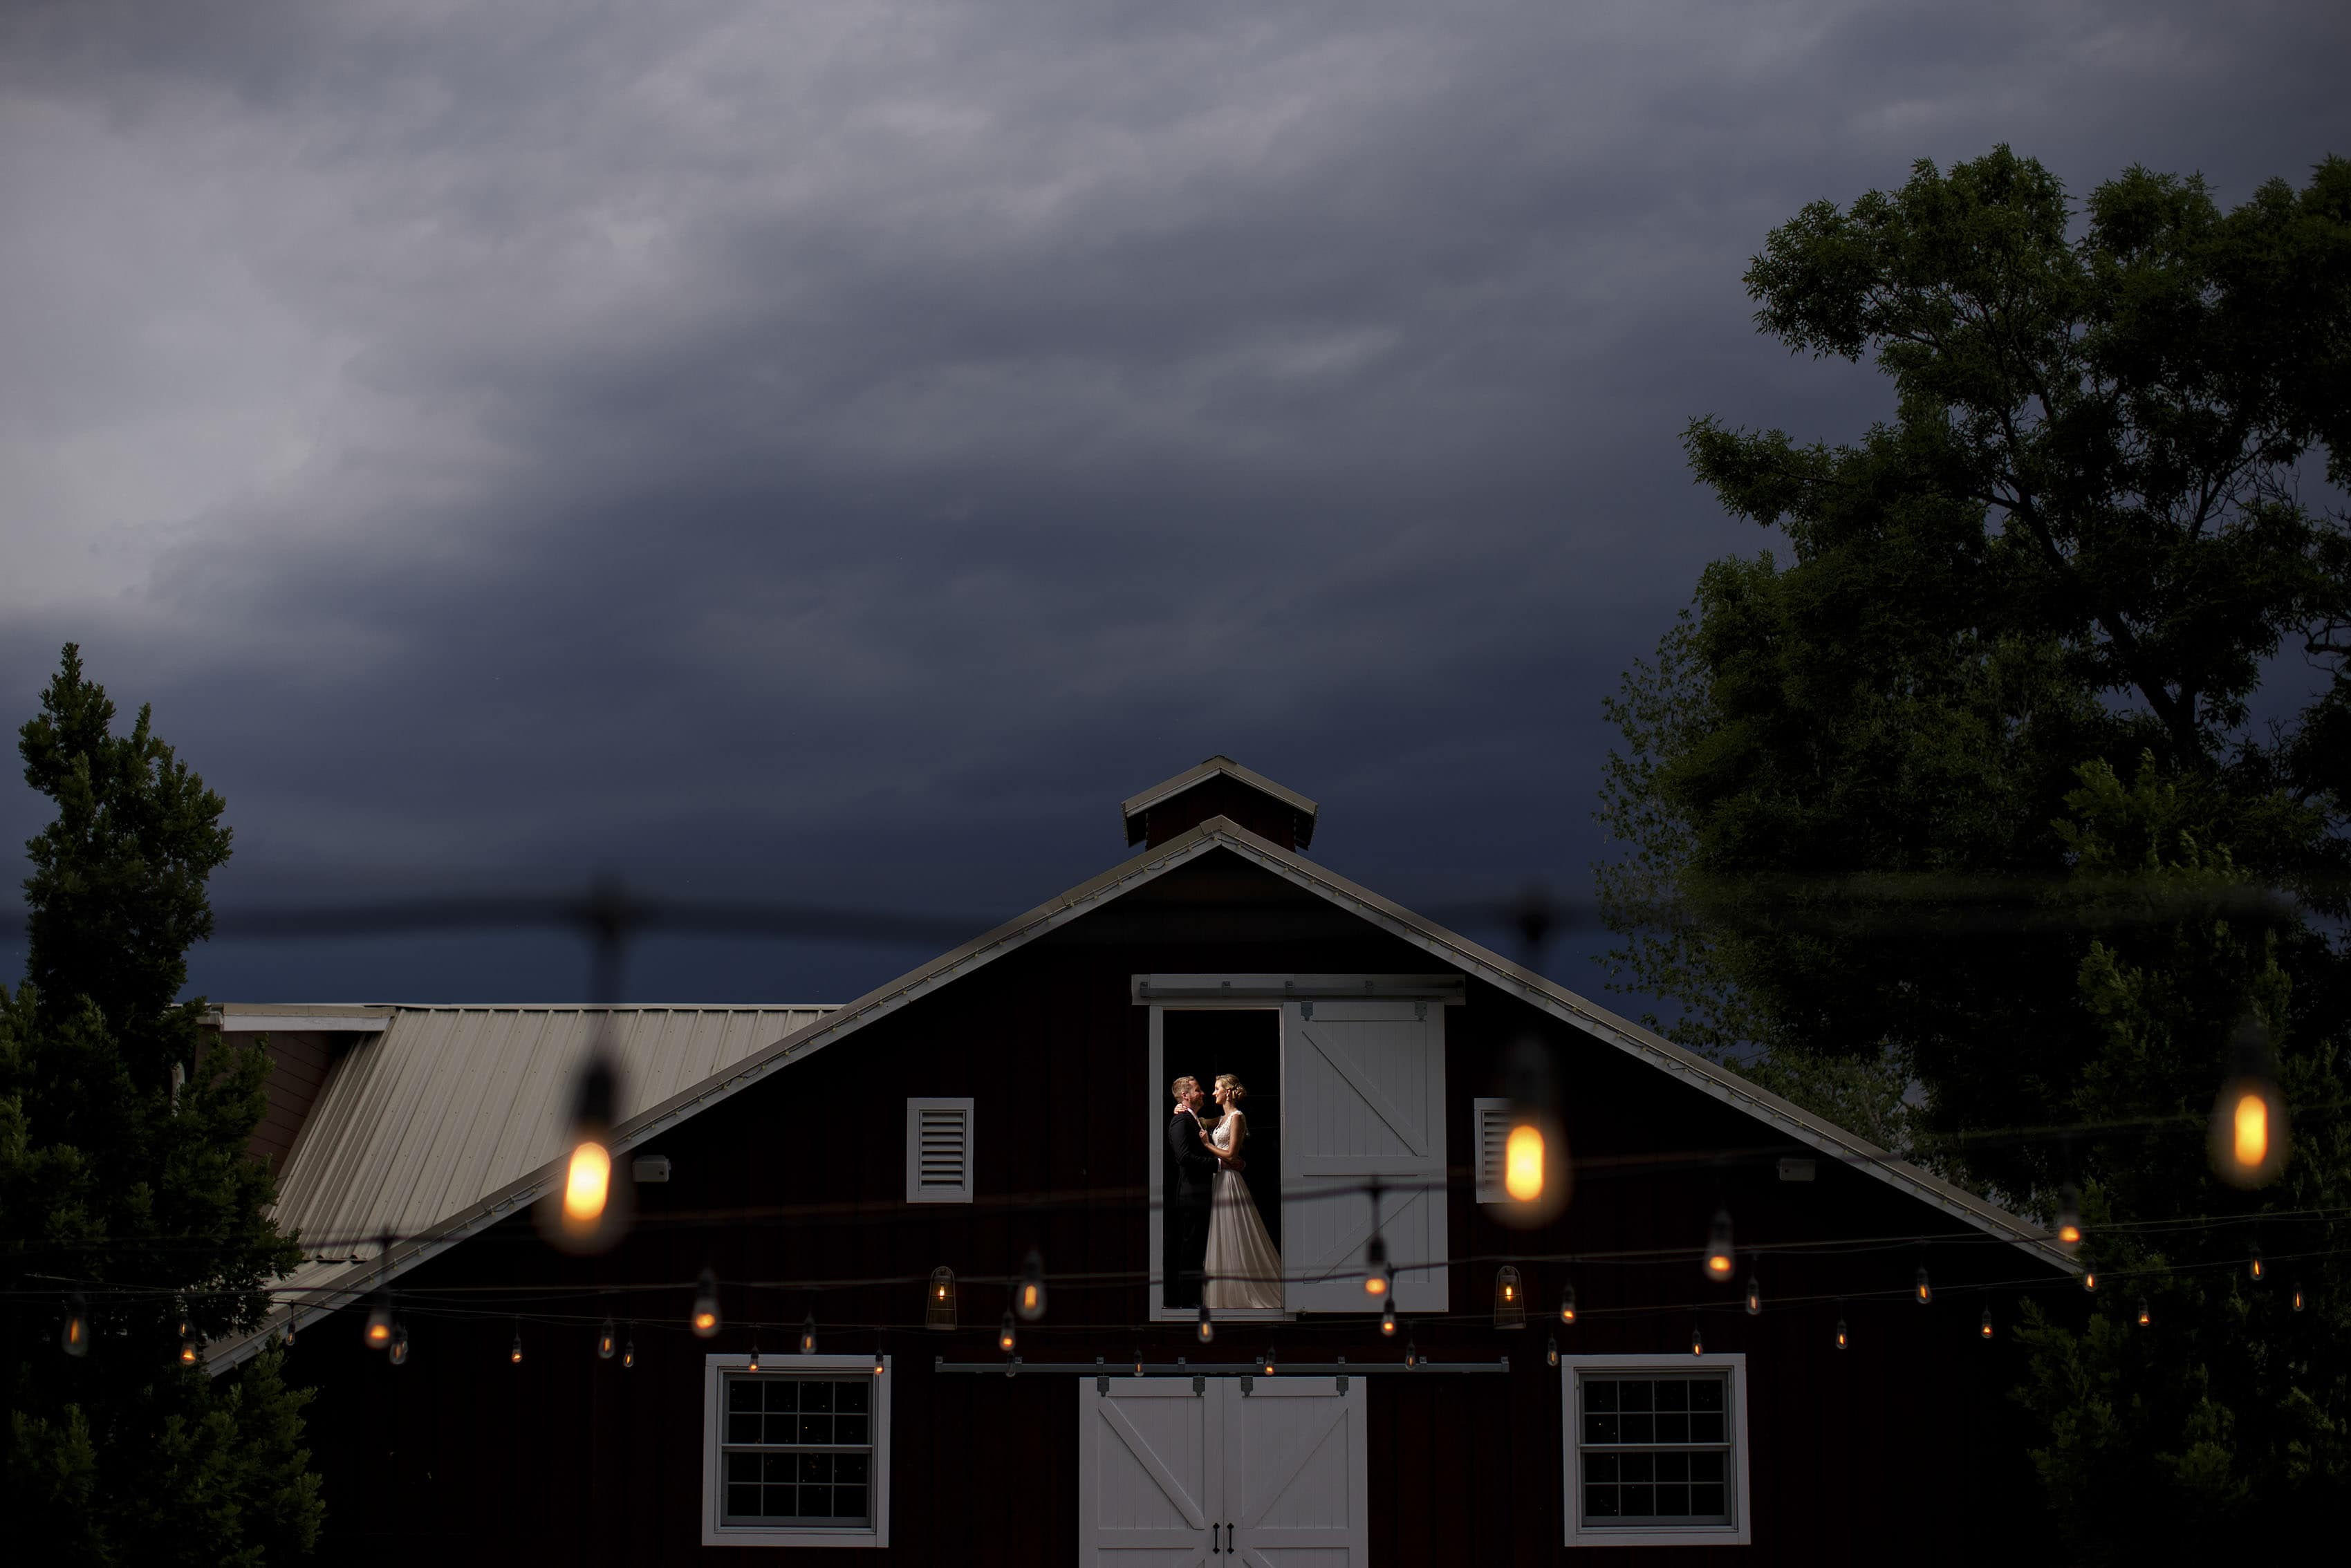 Jennifer and Stefan pose in the barn loft during their wedding day at the barn at raccoon creek in Littleton